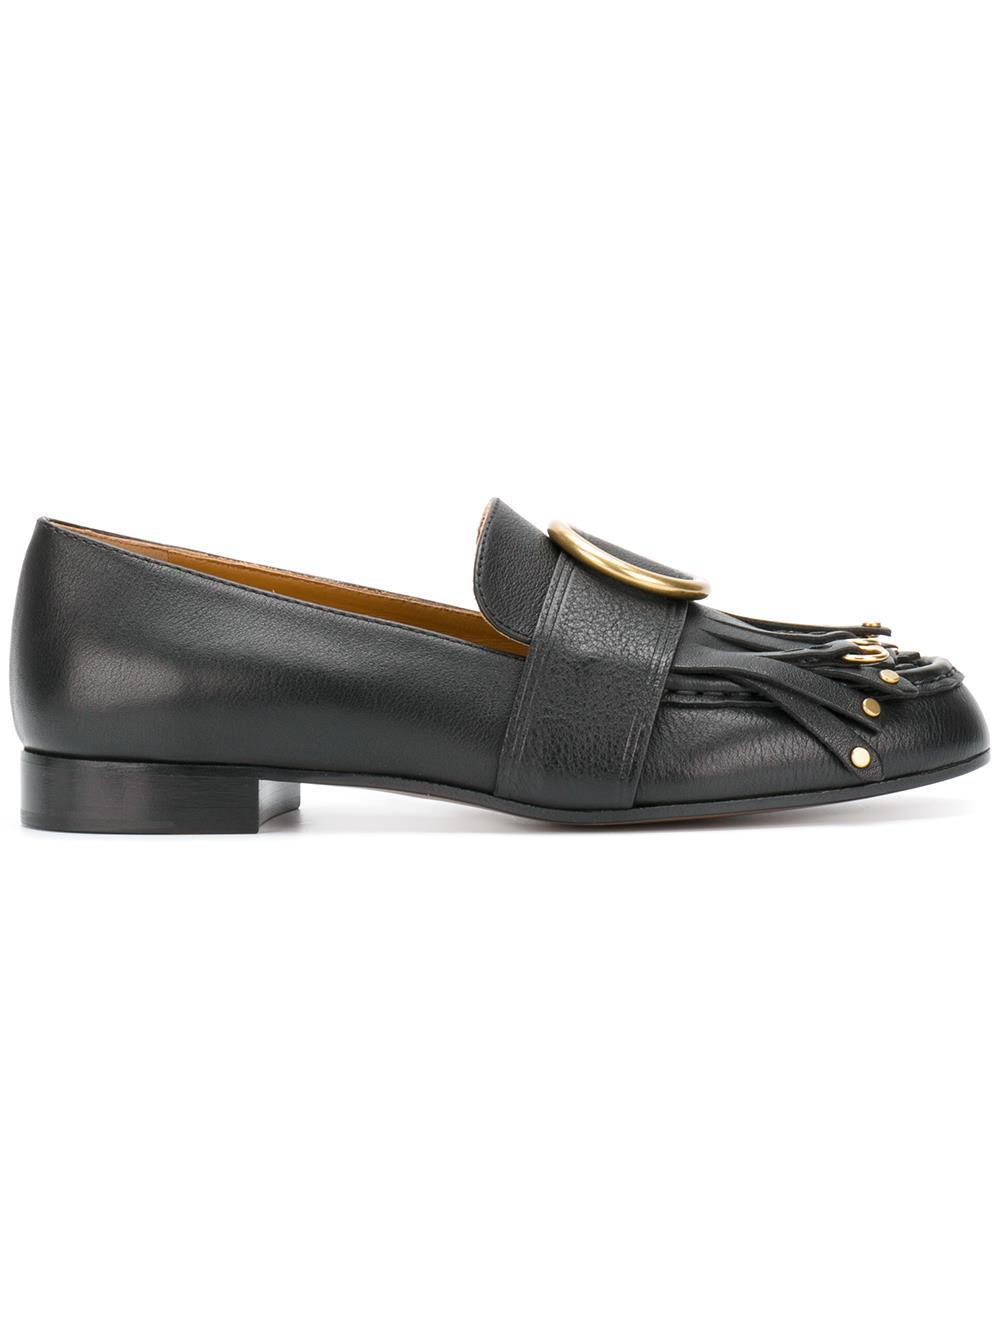 27362b96ffc Chloé - Black Olly Fringed Leather Loafers - Lyst. View fullscreen